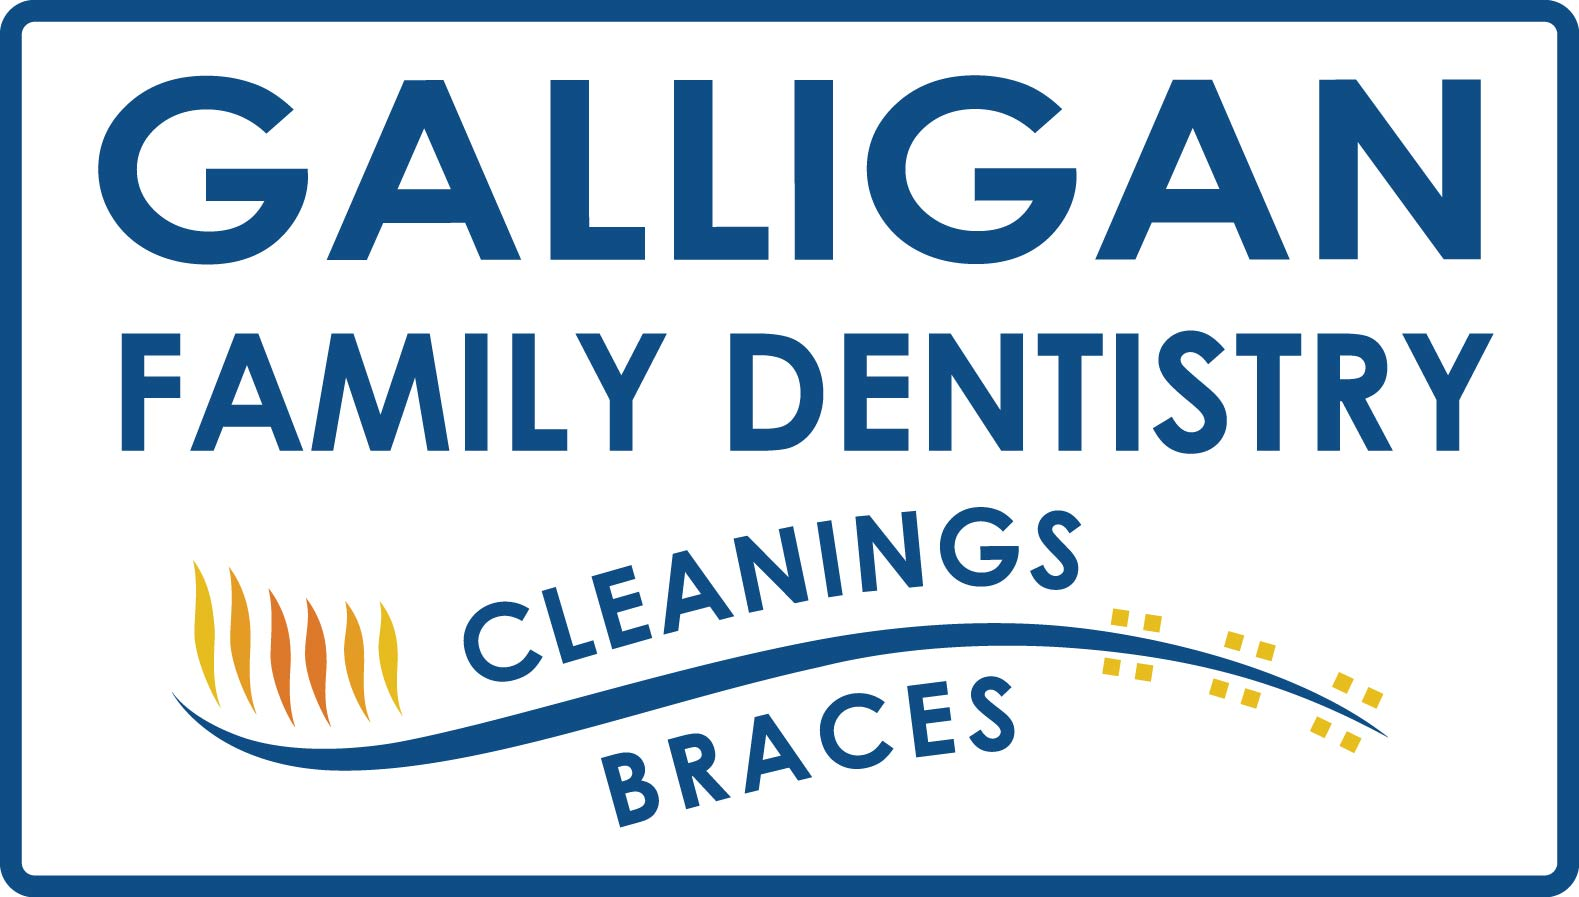 Galligan Family Dentistry